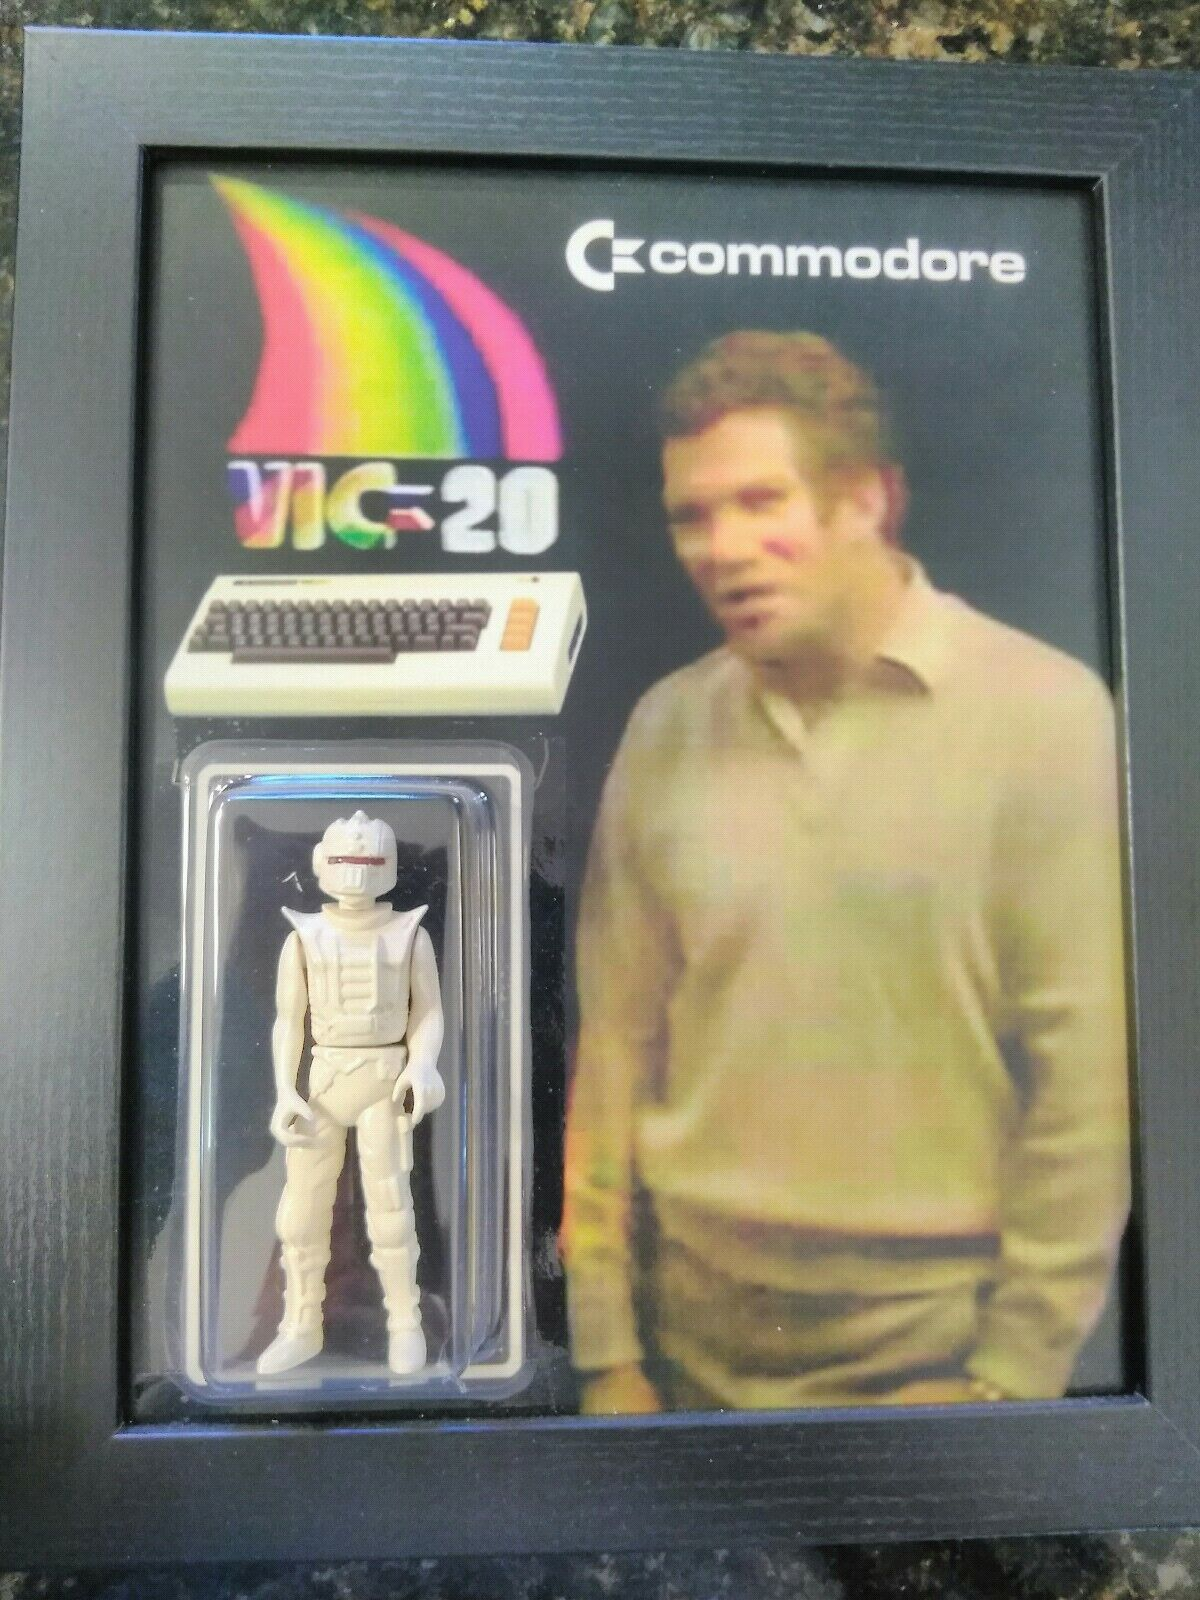 Star Wars Trek Sucklord Commodore VIC-20 Bill Shatner suckadelic DKE botaleg 1 1